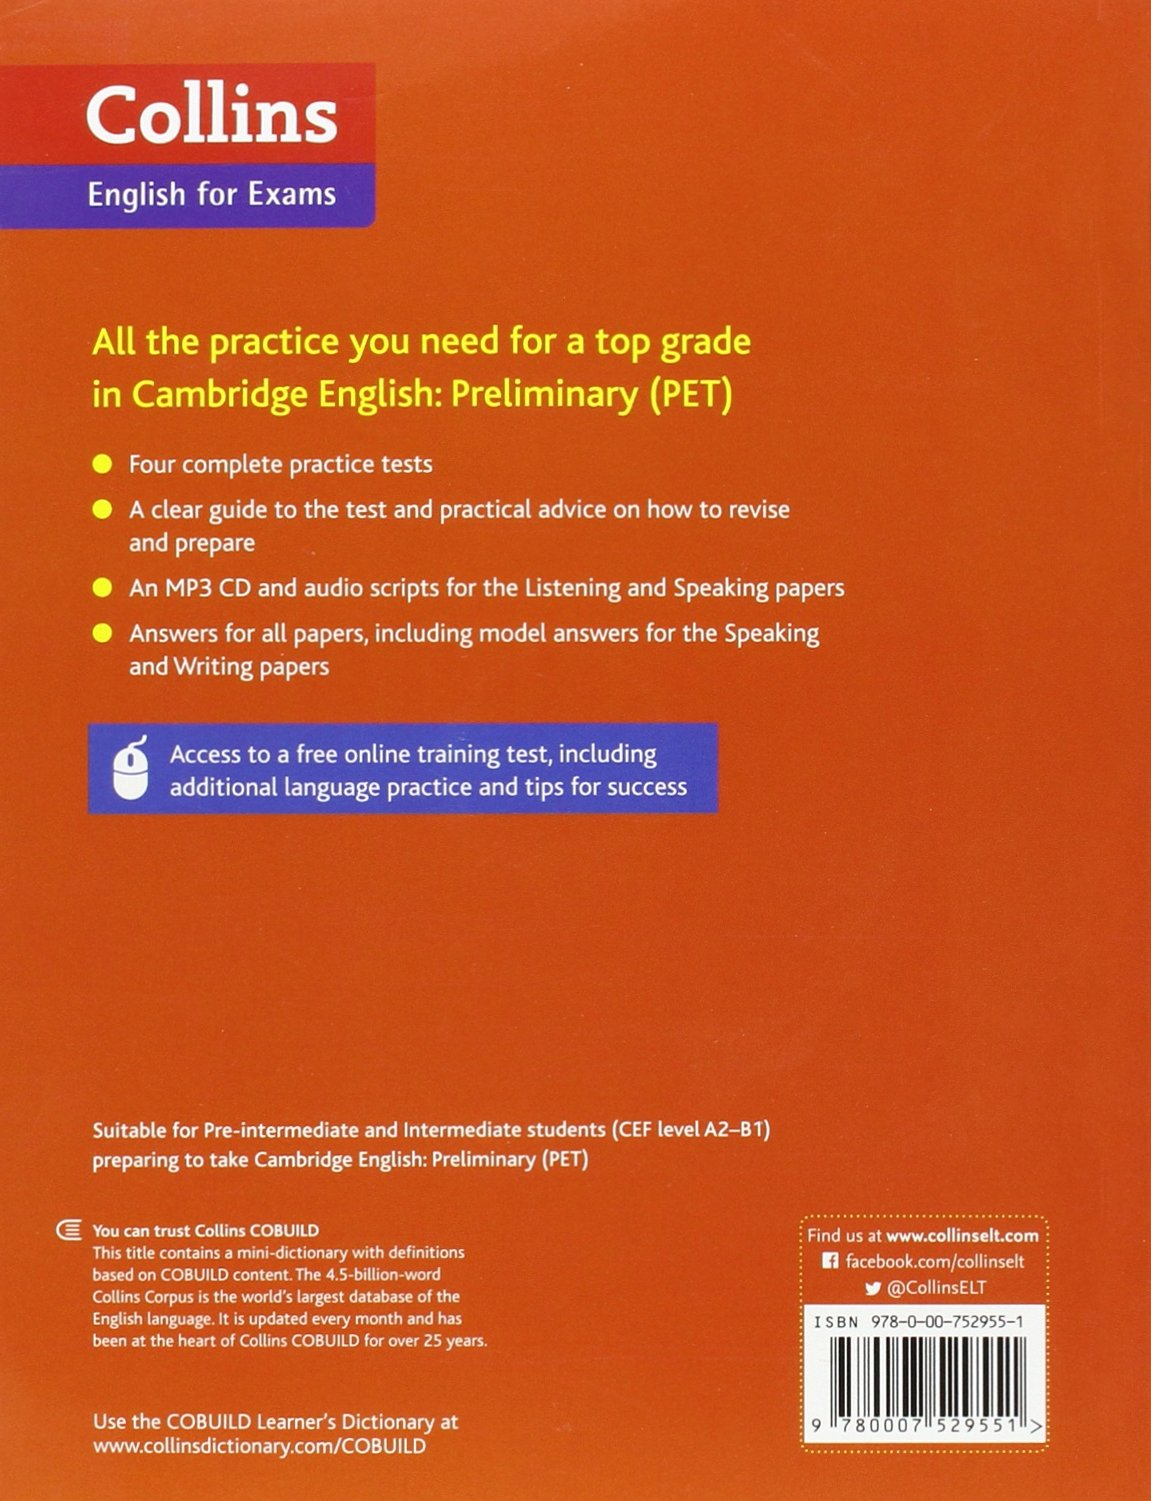 Practice tests for cambridge english preliminary pet collins cambridge english amazon co uk peter travis 9780007529551 books